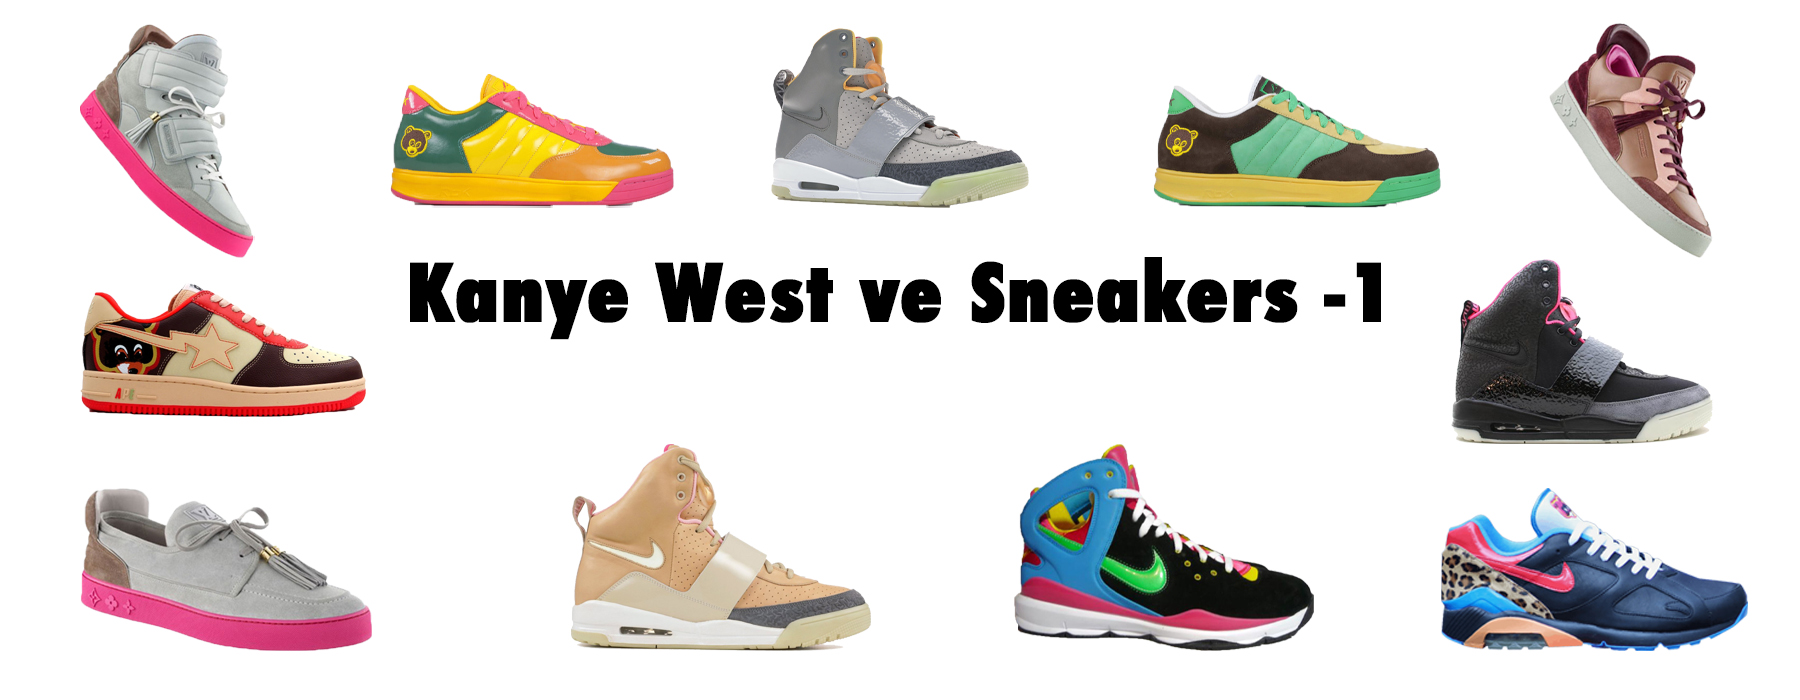 Kanye west ve Sneakers